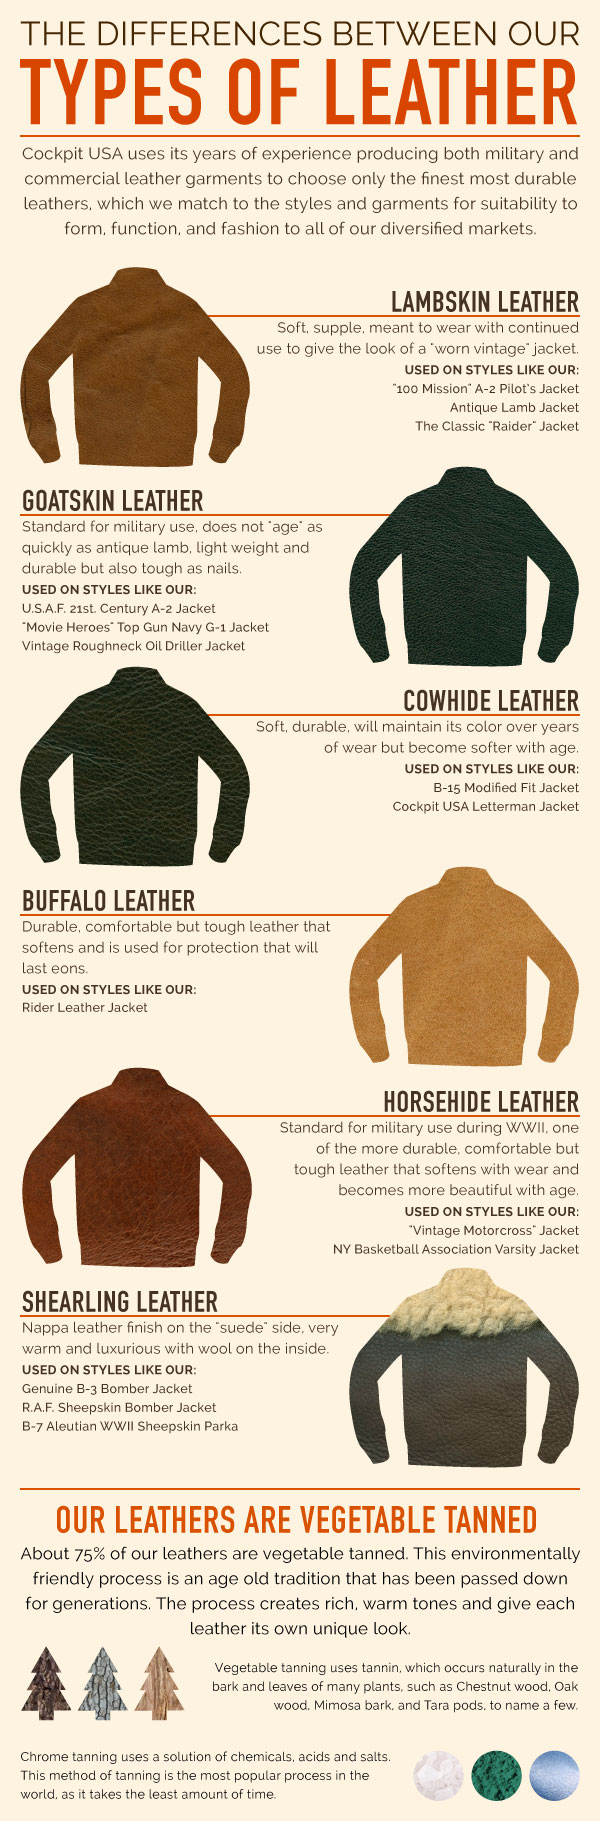 Types of Leather for Cockpit USA